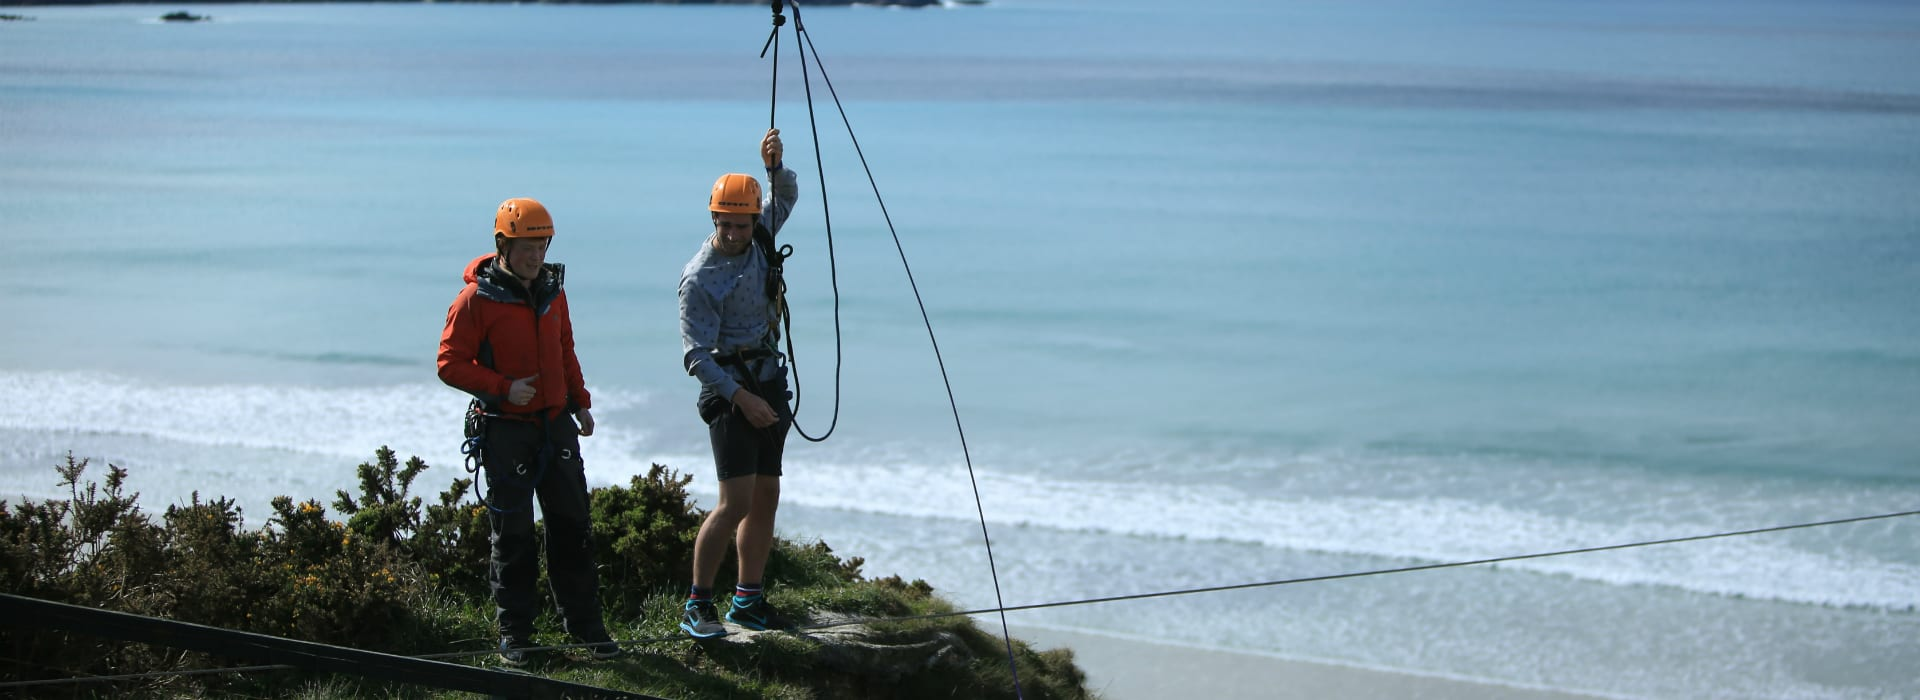 Adrenaline Activities Newquay fun for all the family